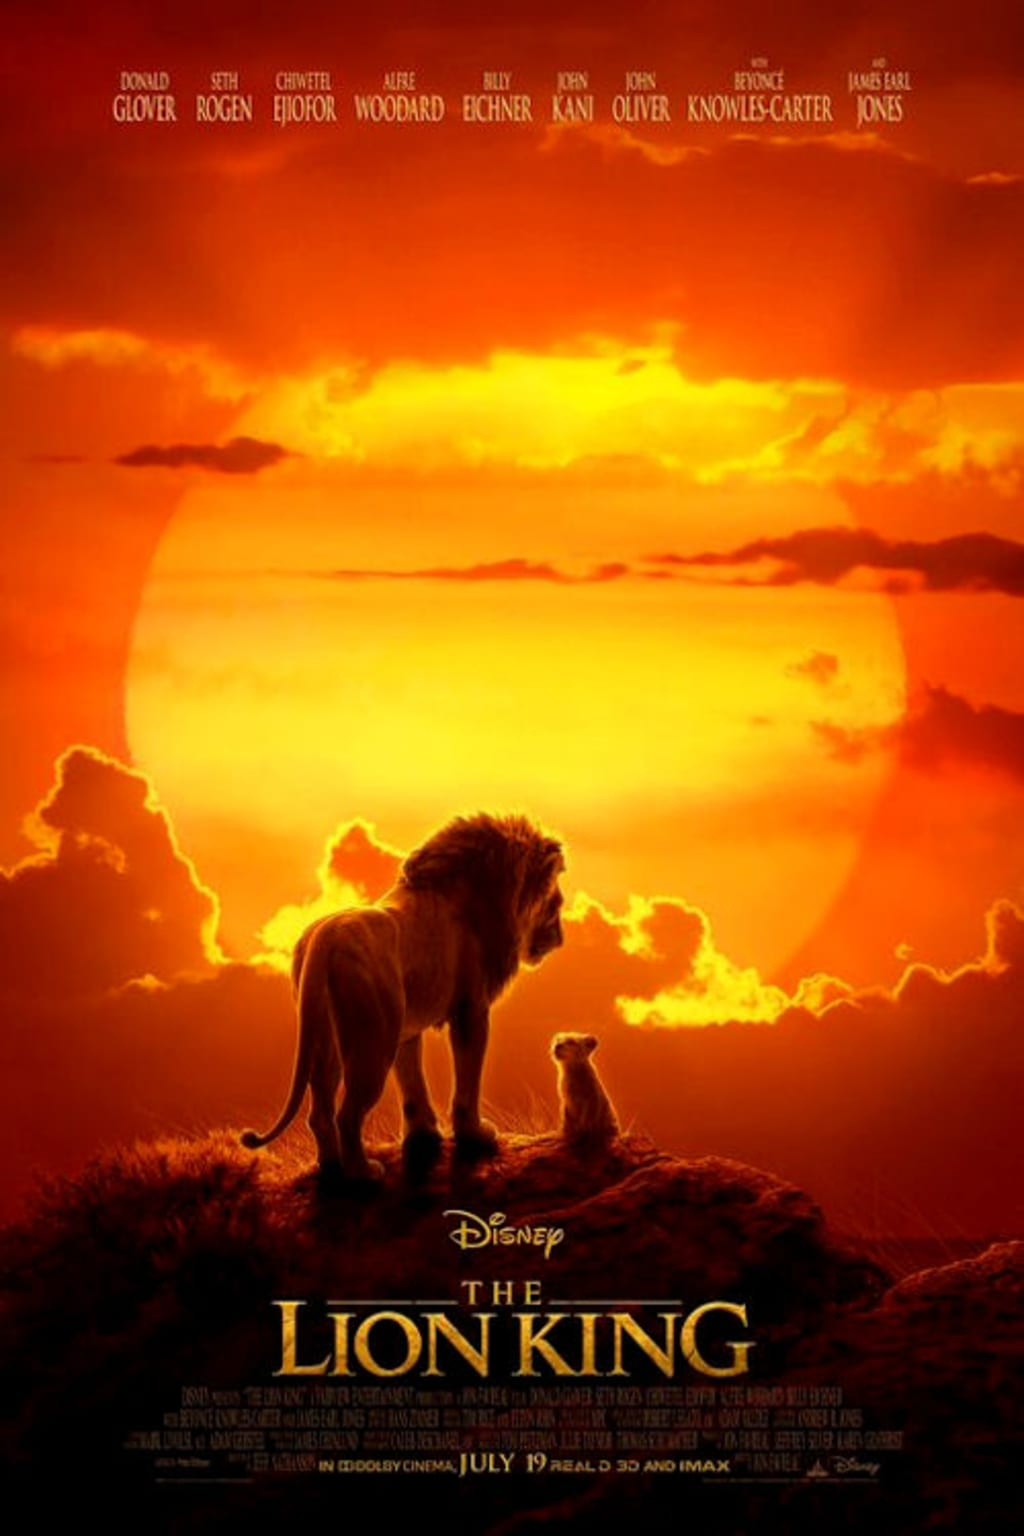 Anthony's Film Review - 'The Lion King' (2019)